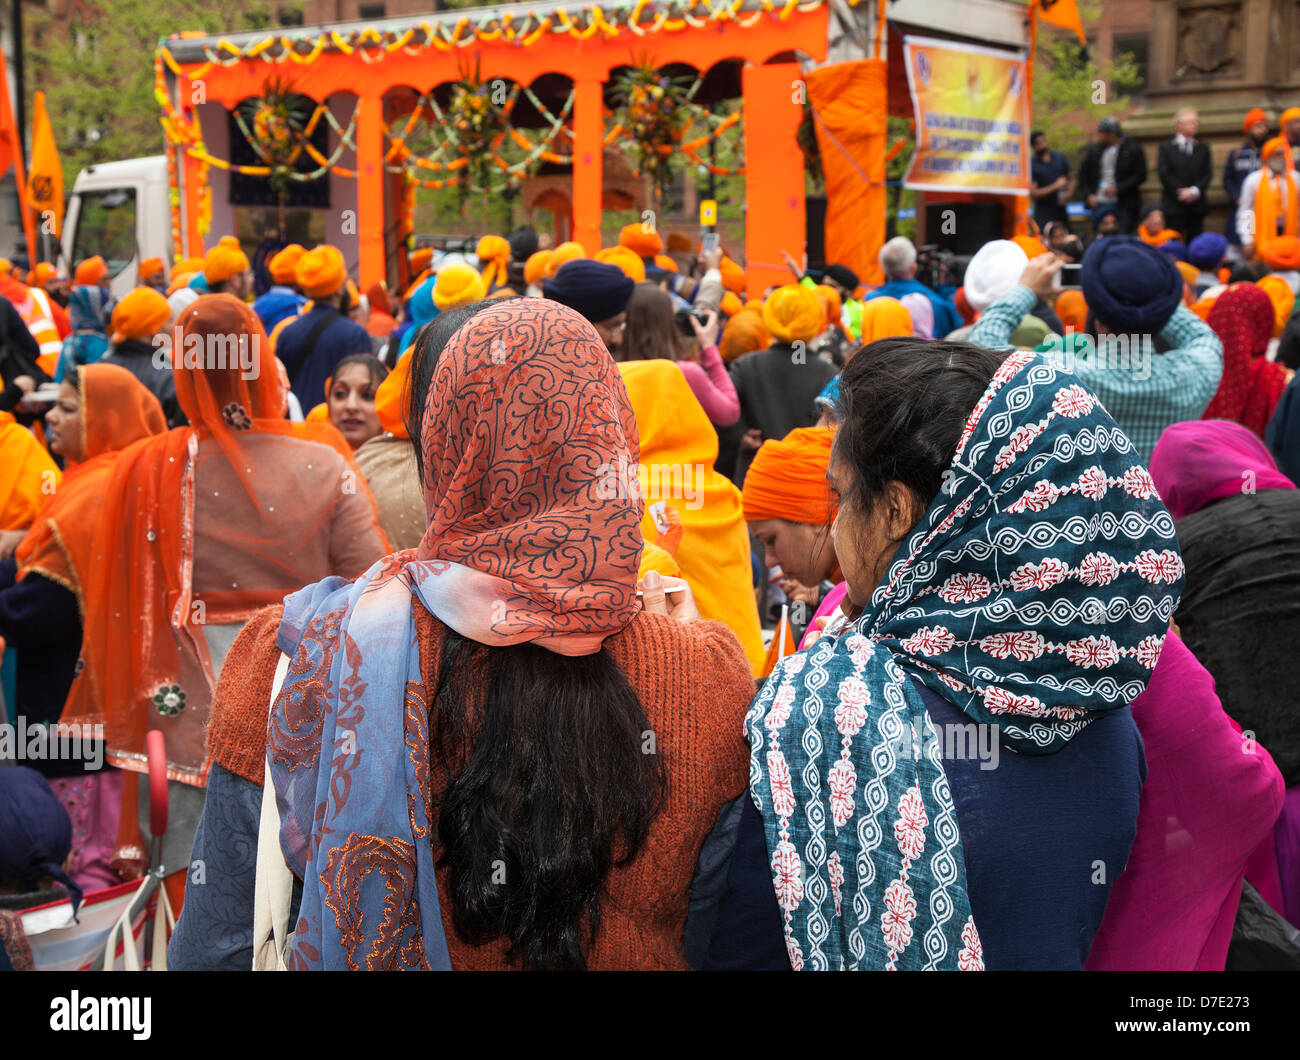 Manchester, UK. 5th May, 2013. The most important Vaisakhi celebration in the Sikh calendar marked by the Sikh Community Stock Photo